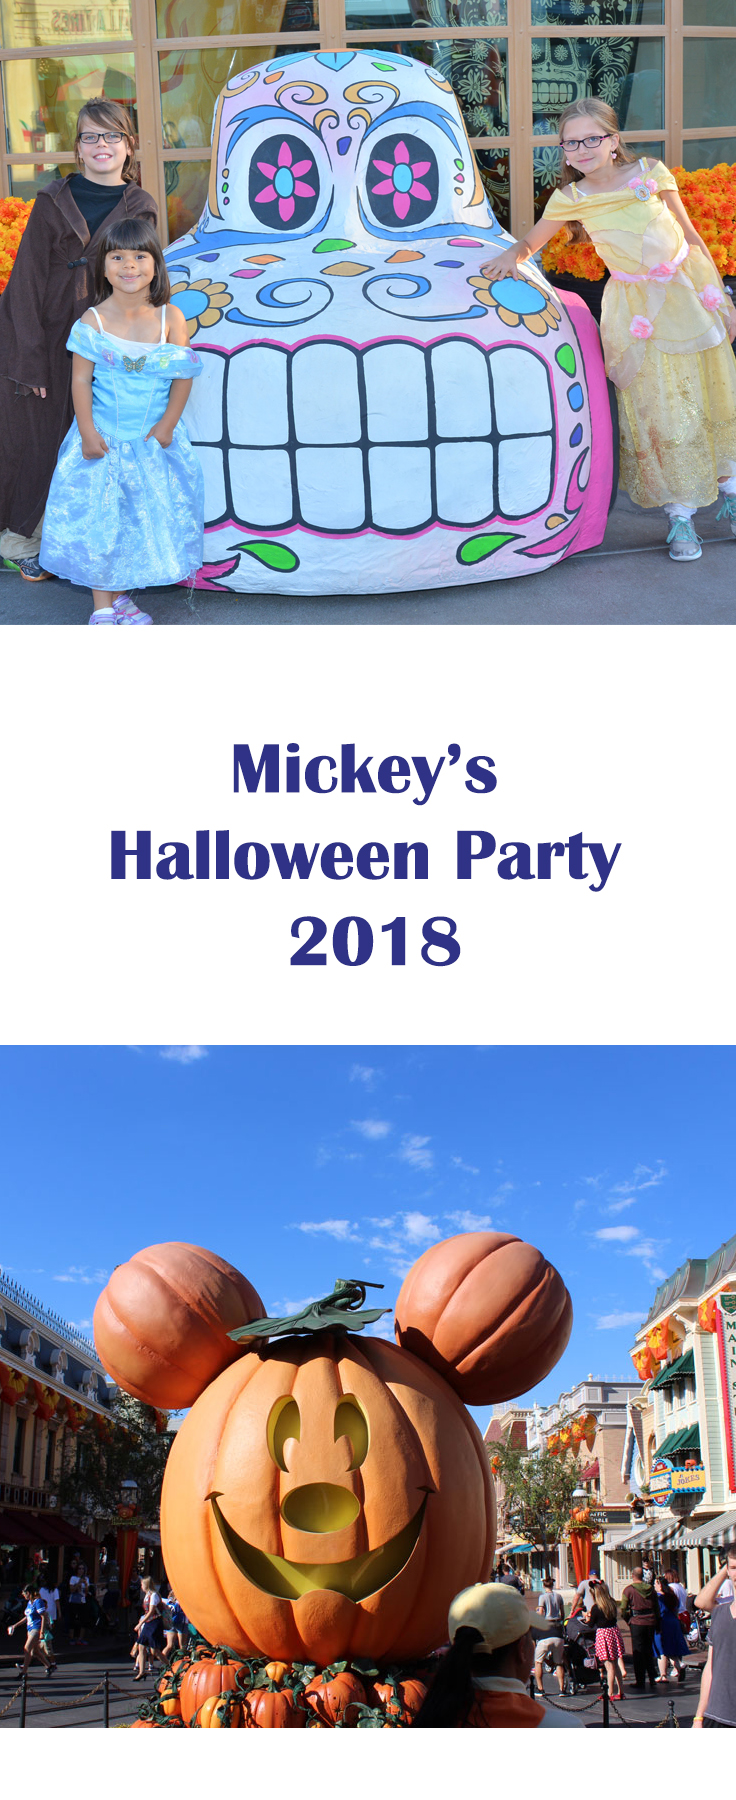 mickey's halloween party dates